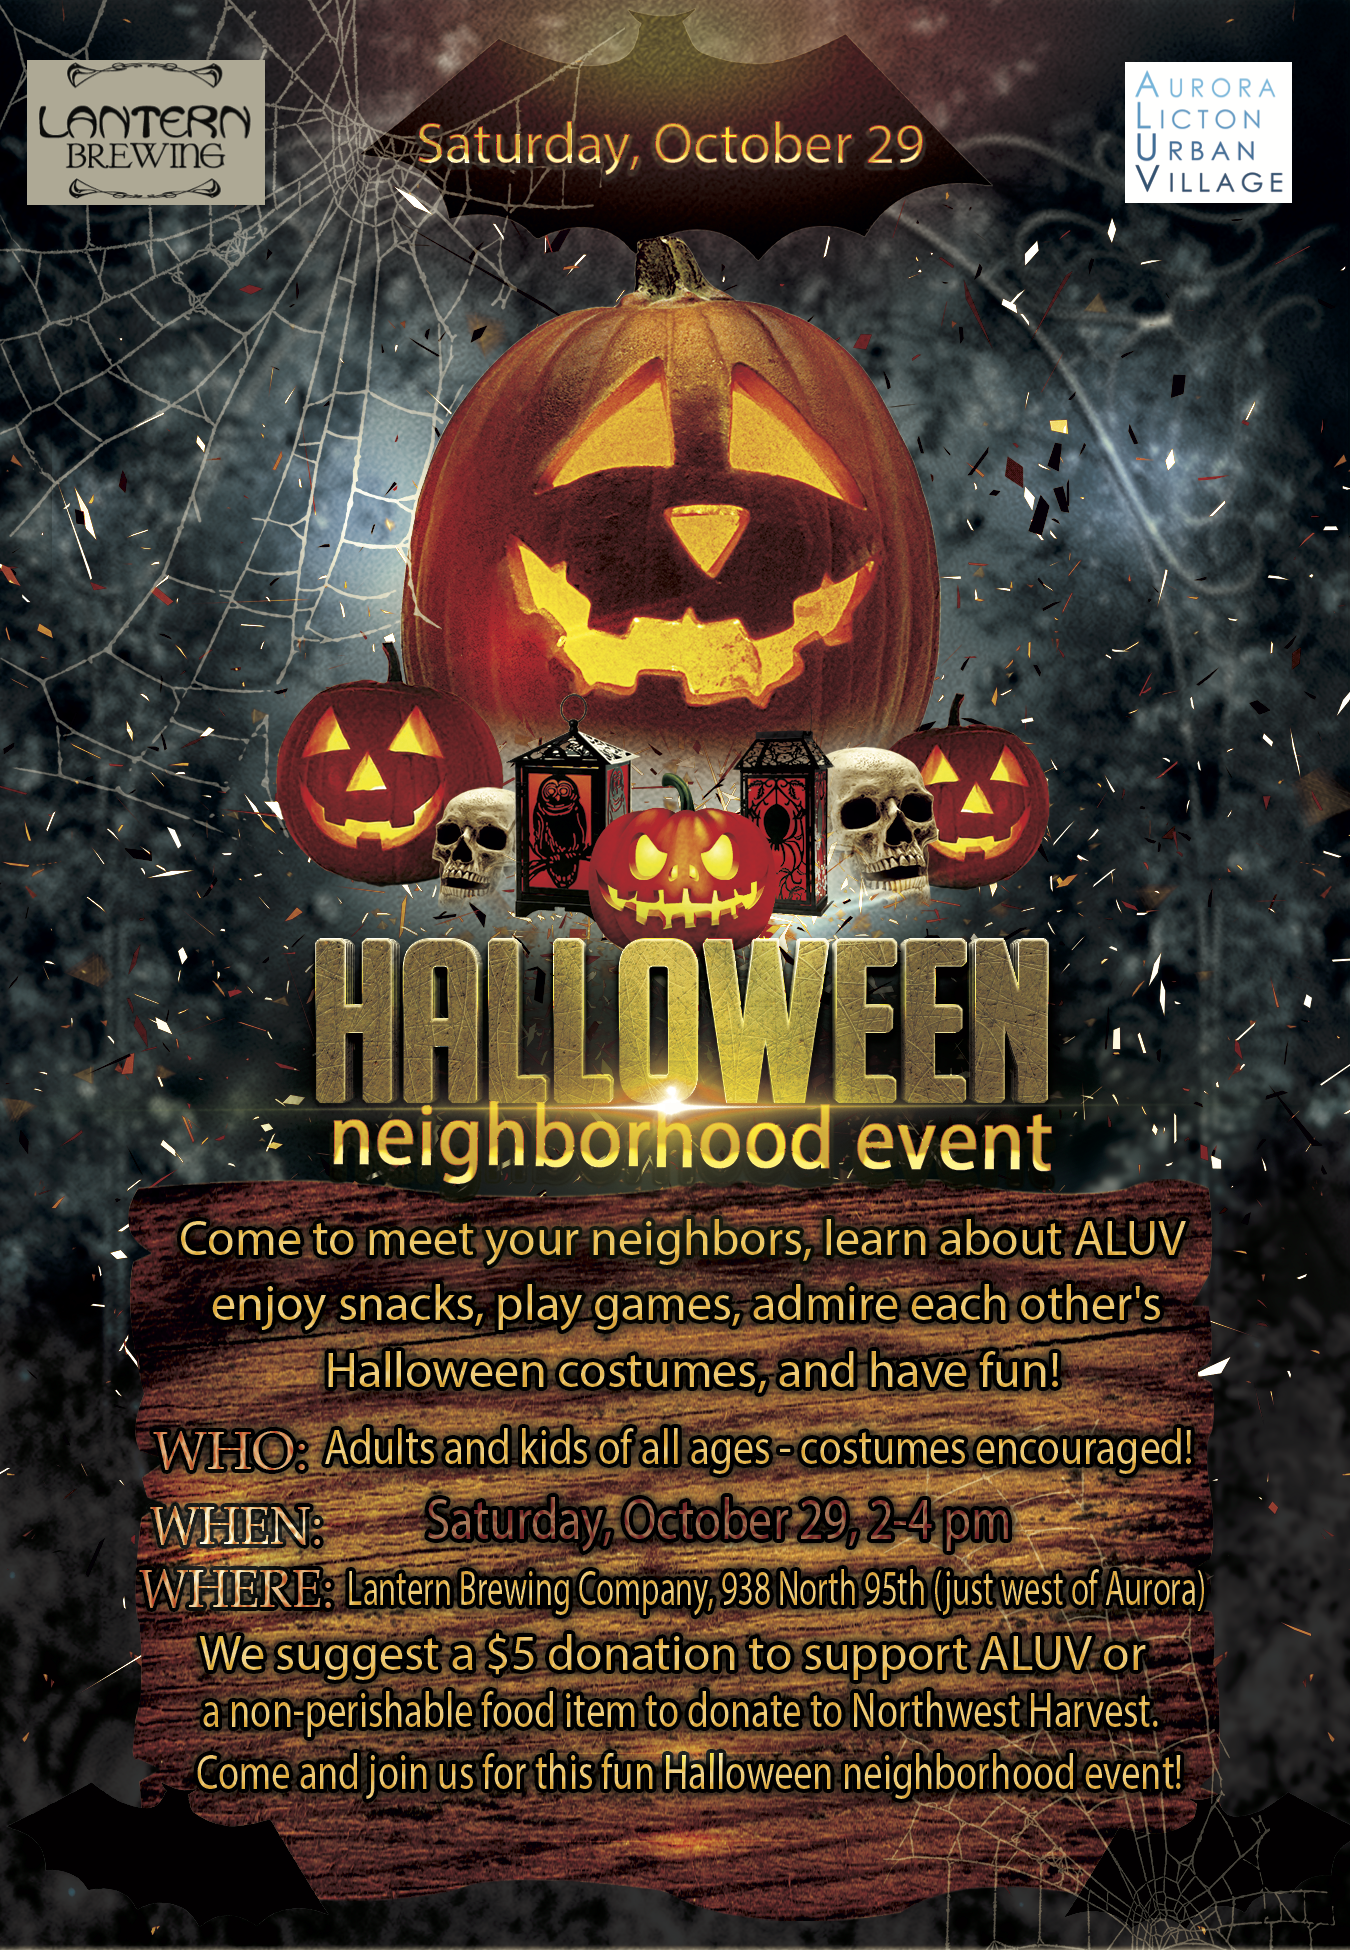 Halloween night at the Lantern